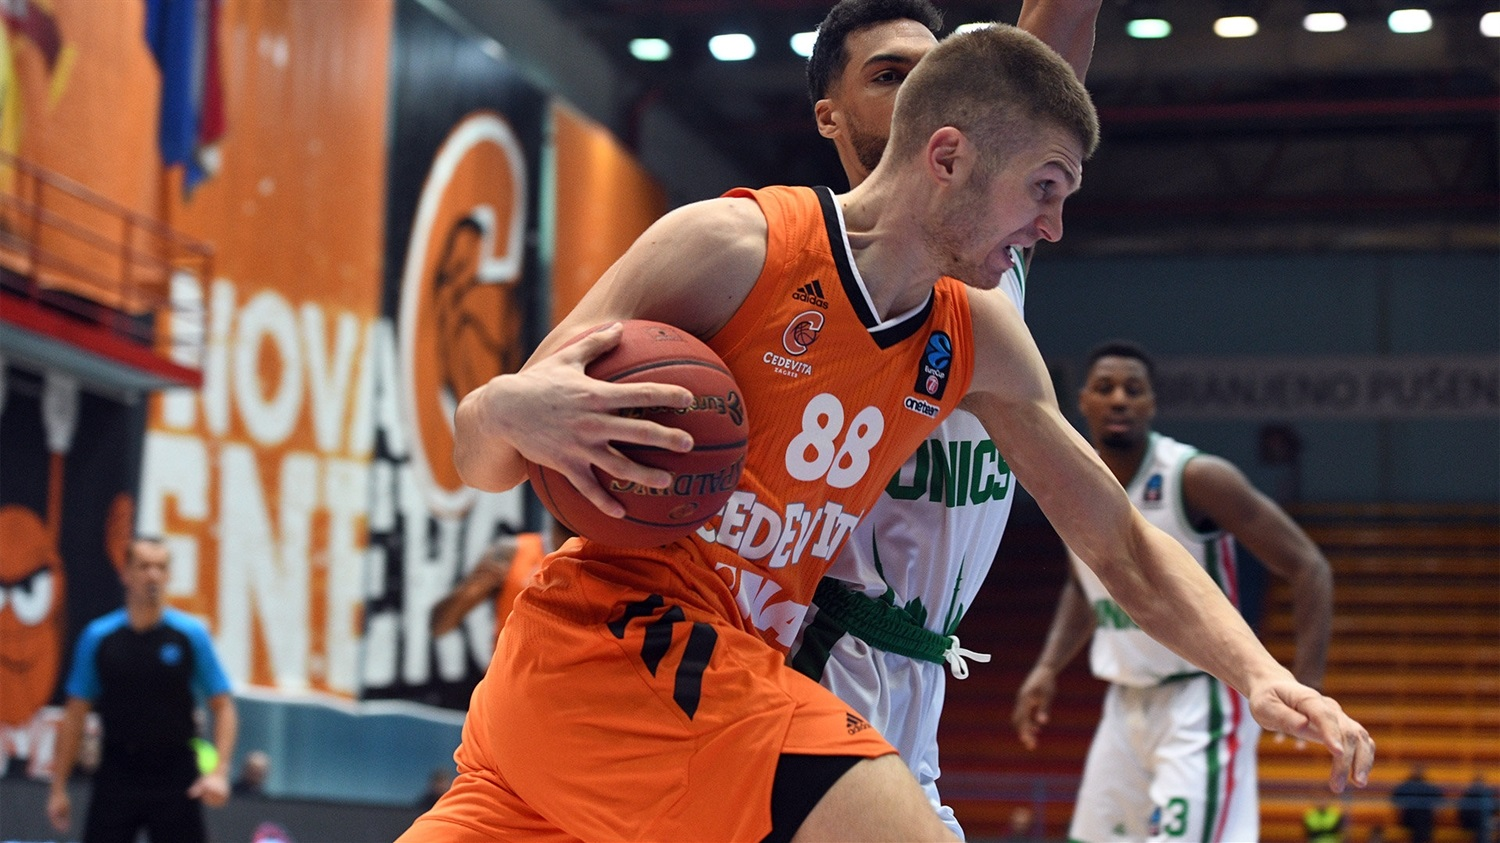 Edo Muric - Cedevita Zagreb (photo UNICS) - EC18